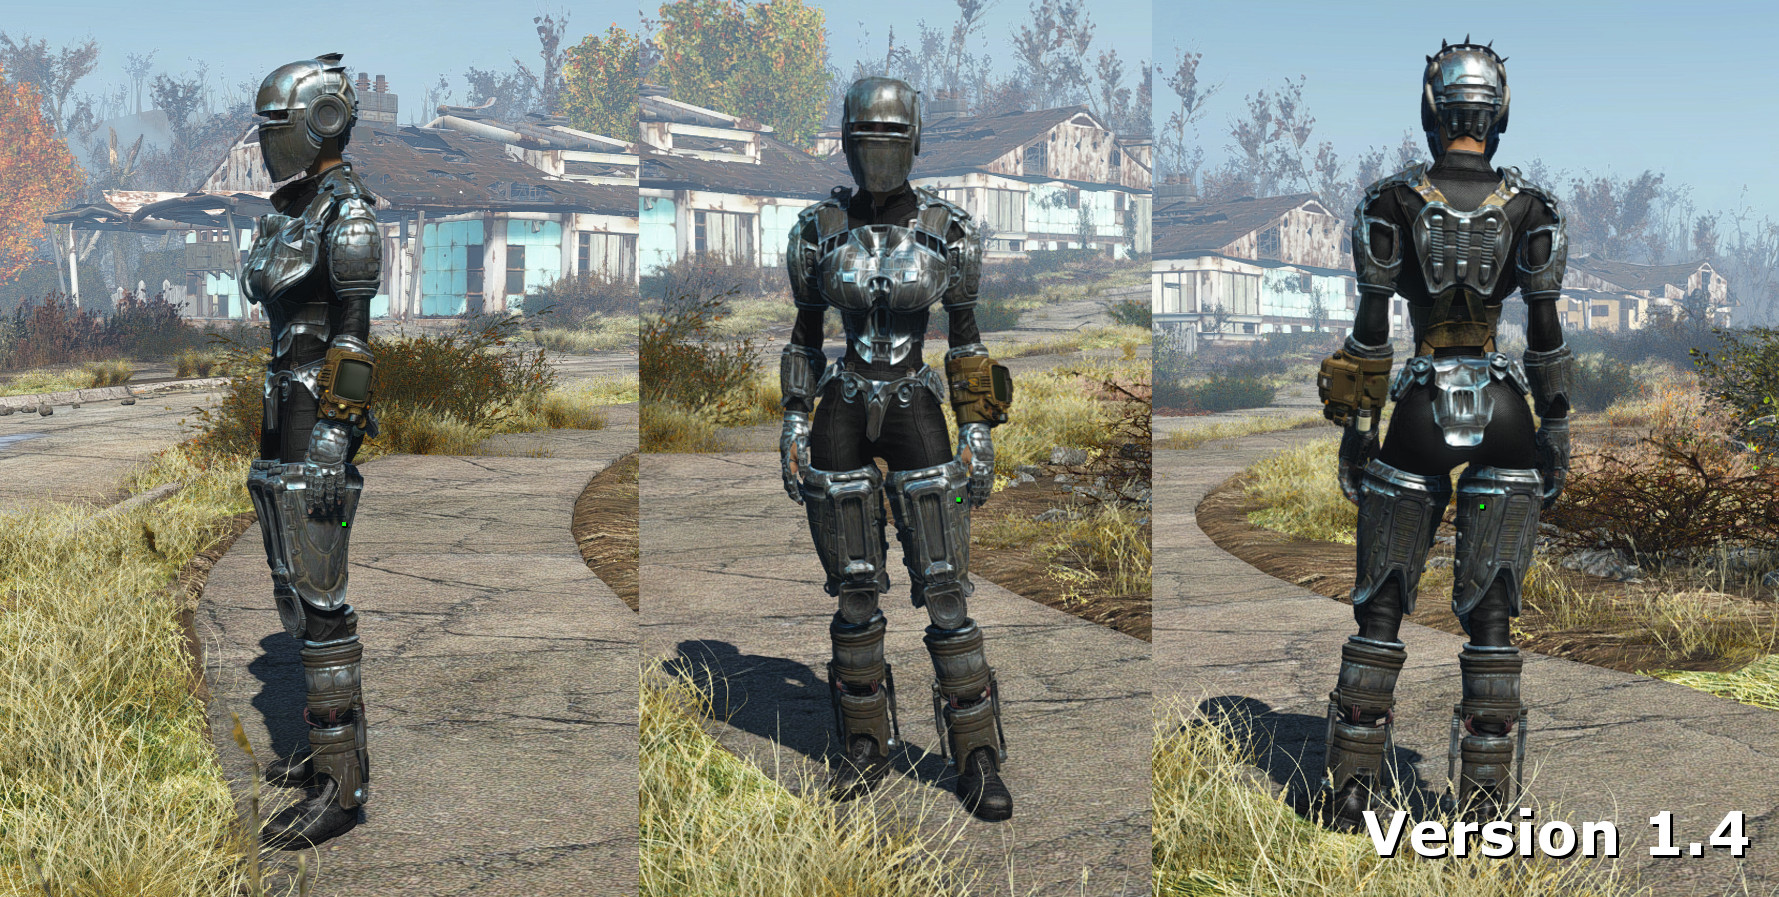 Best Place To Buy Kitchen Faucets Cbbe Every Armor Parts With Bodyslide Fallout 4 Mods